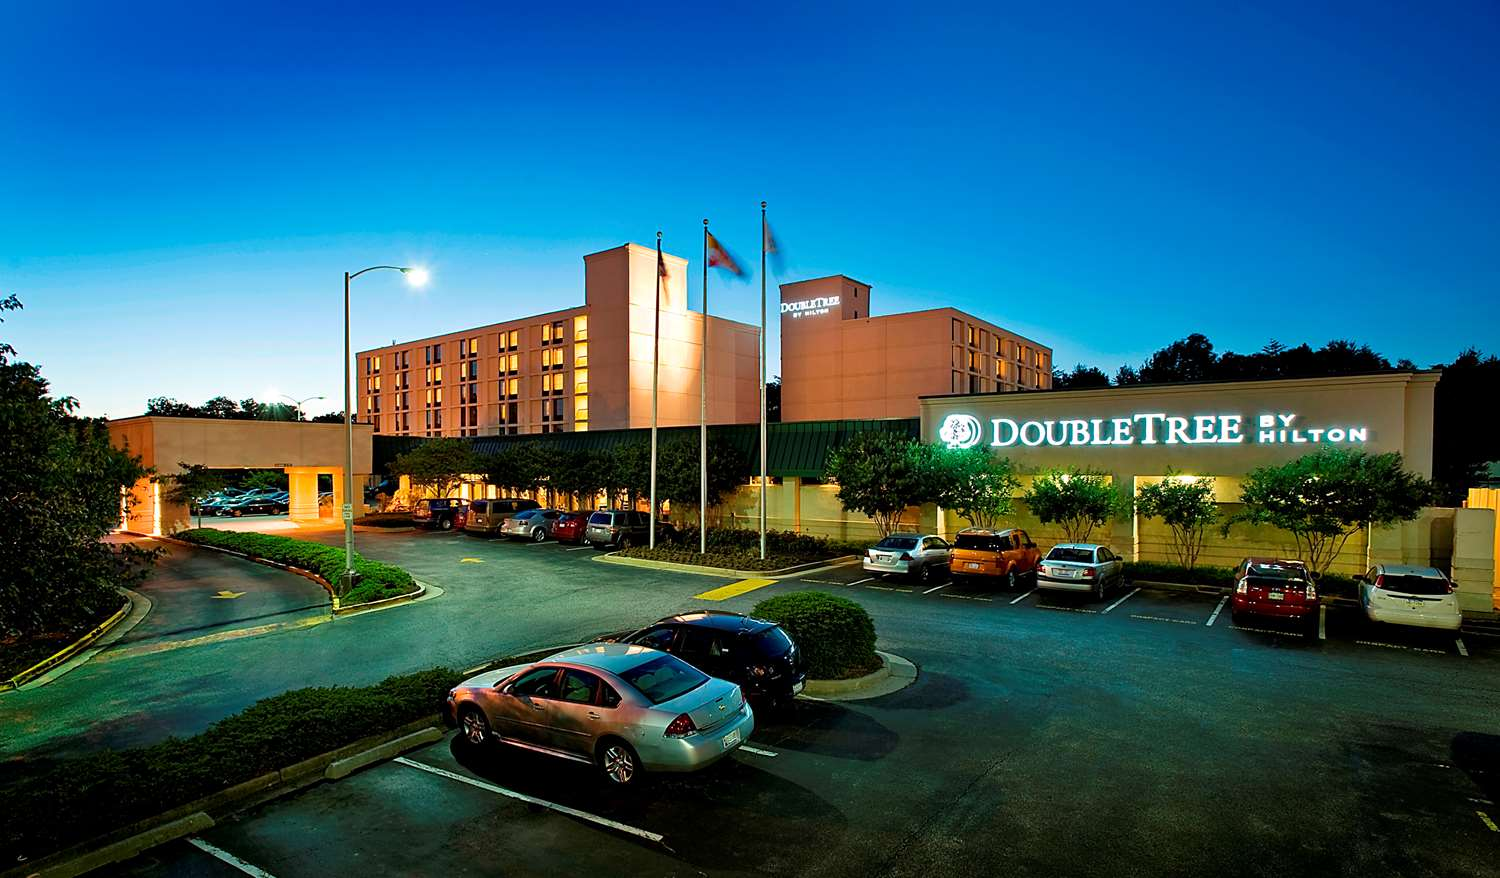 DoubleTree by Hilton Hotel BWI Airport Linthicum